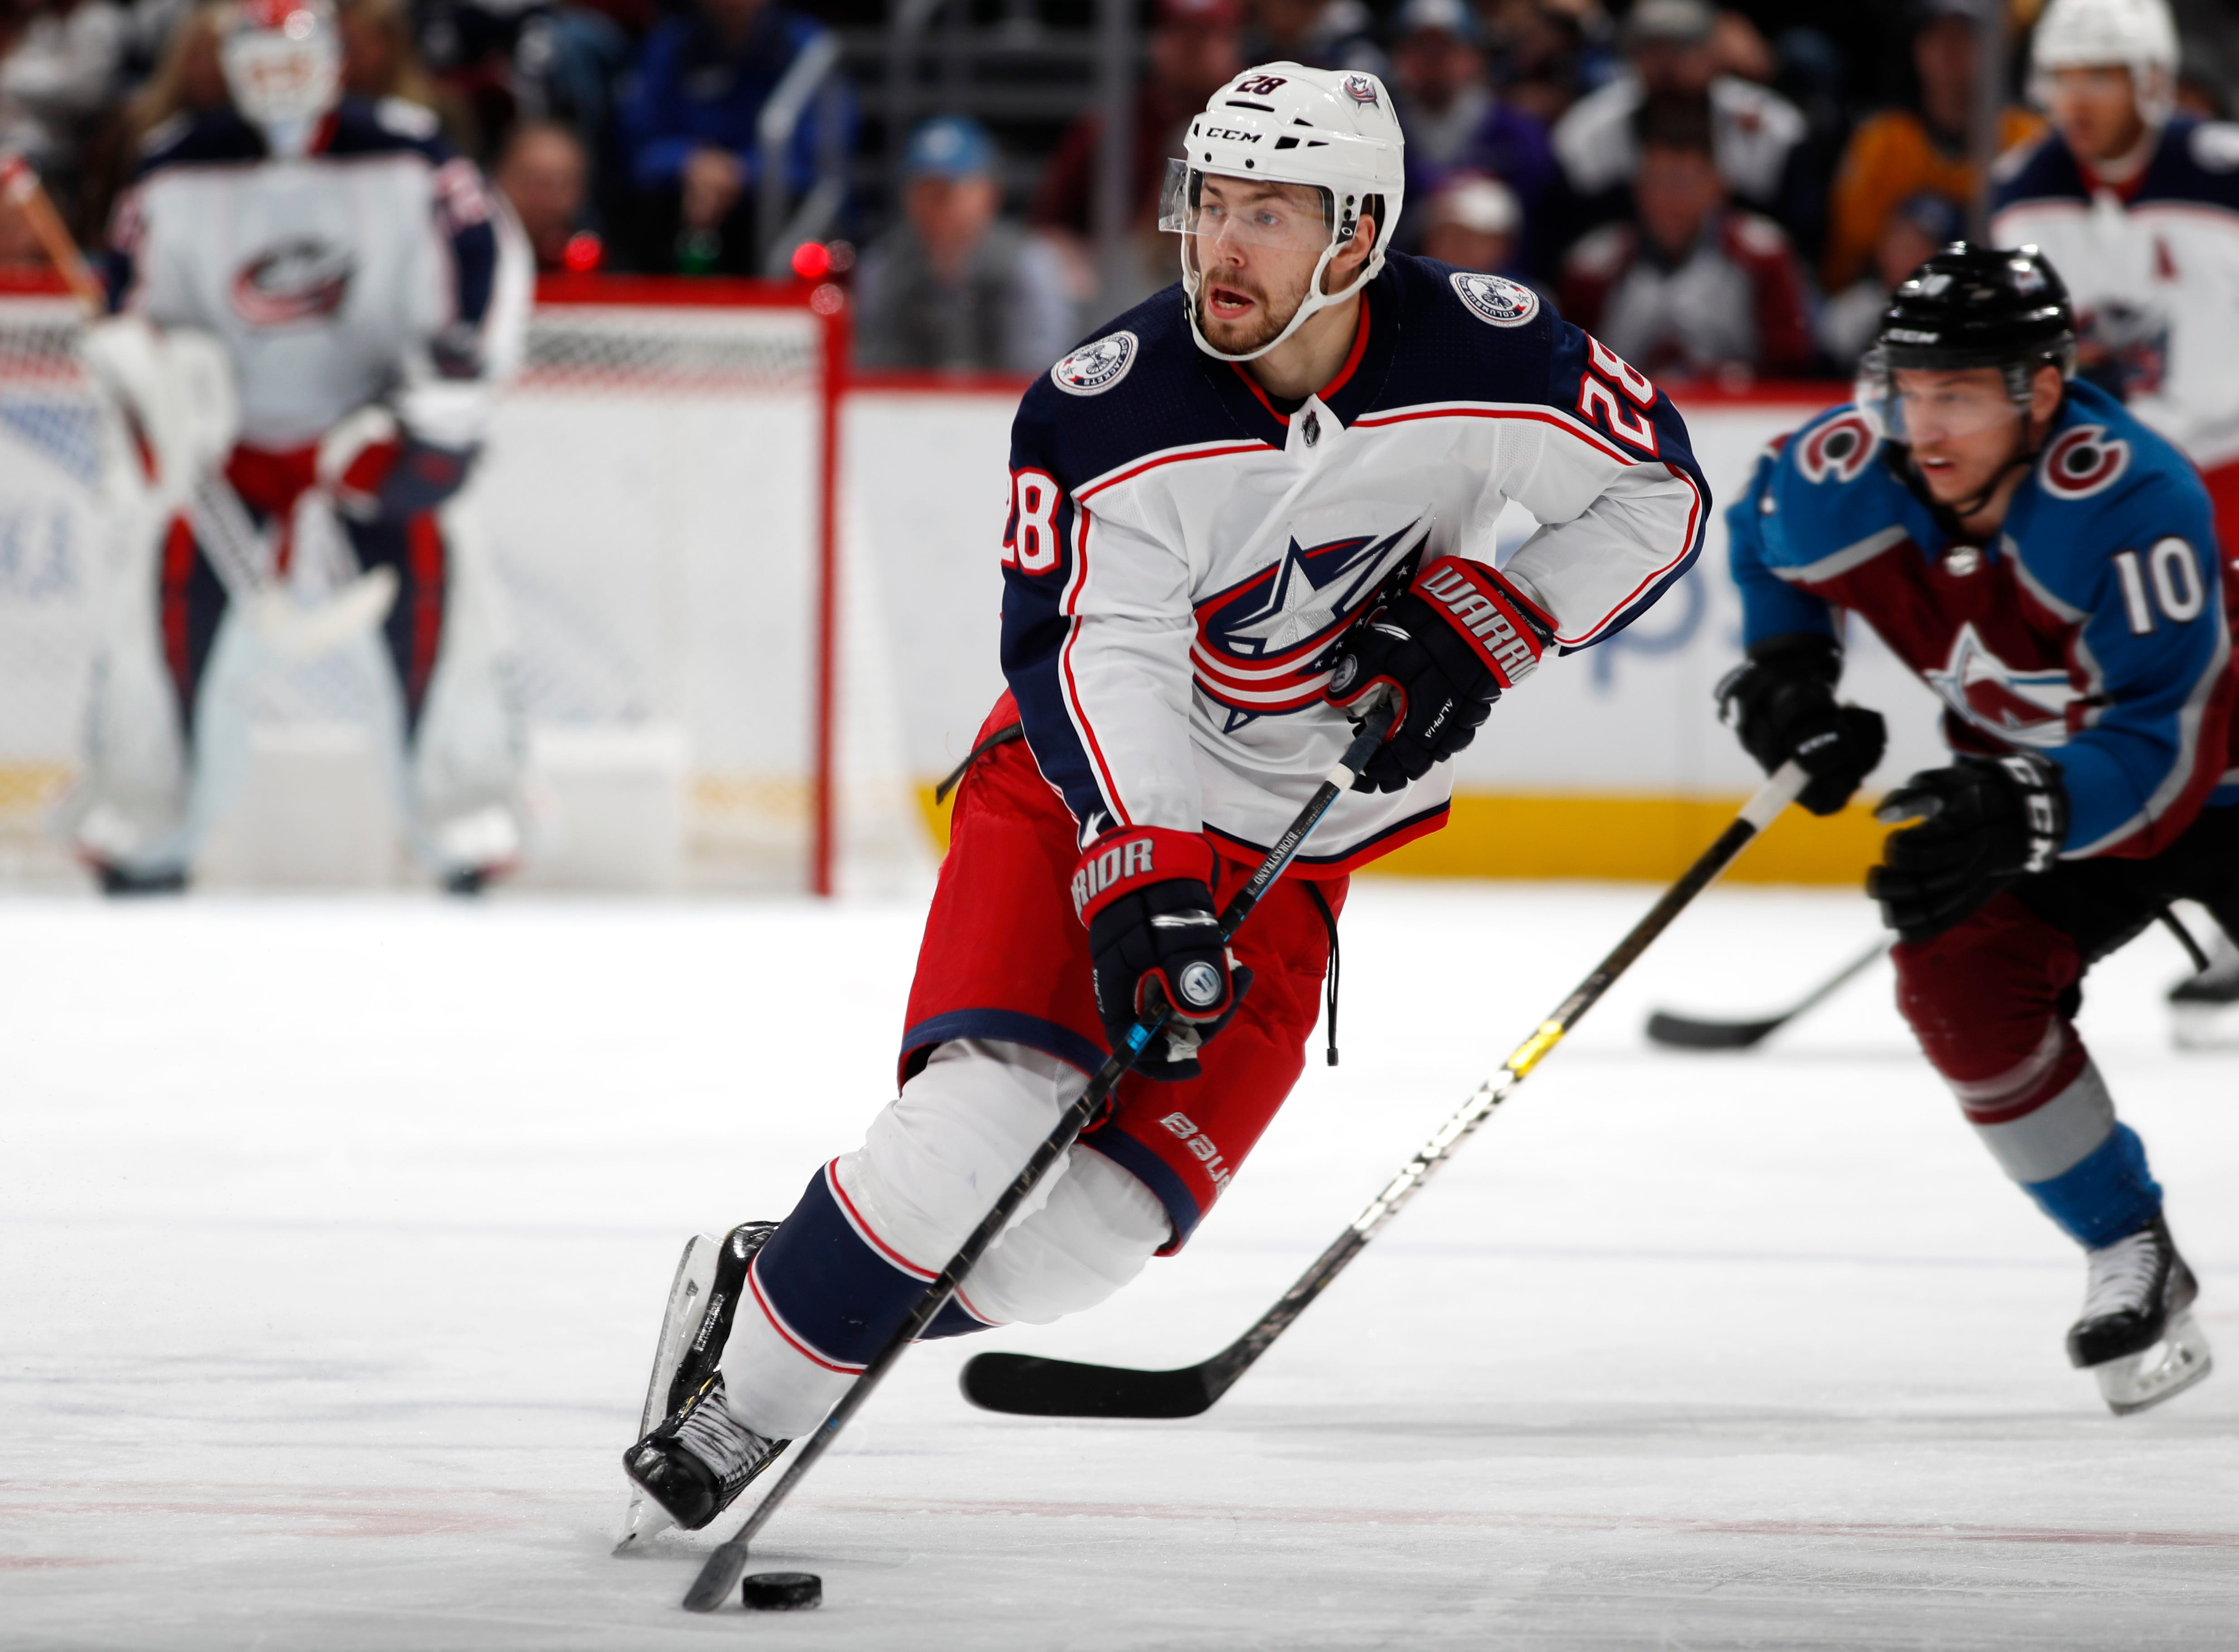 Blue Jackets snap 5-game skid with 6-3 win over Avalanche